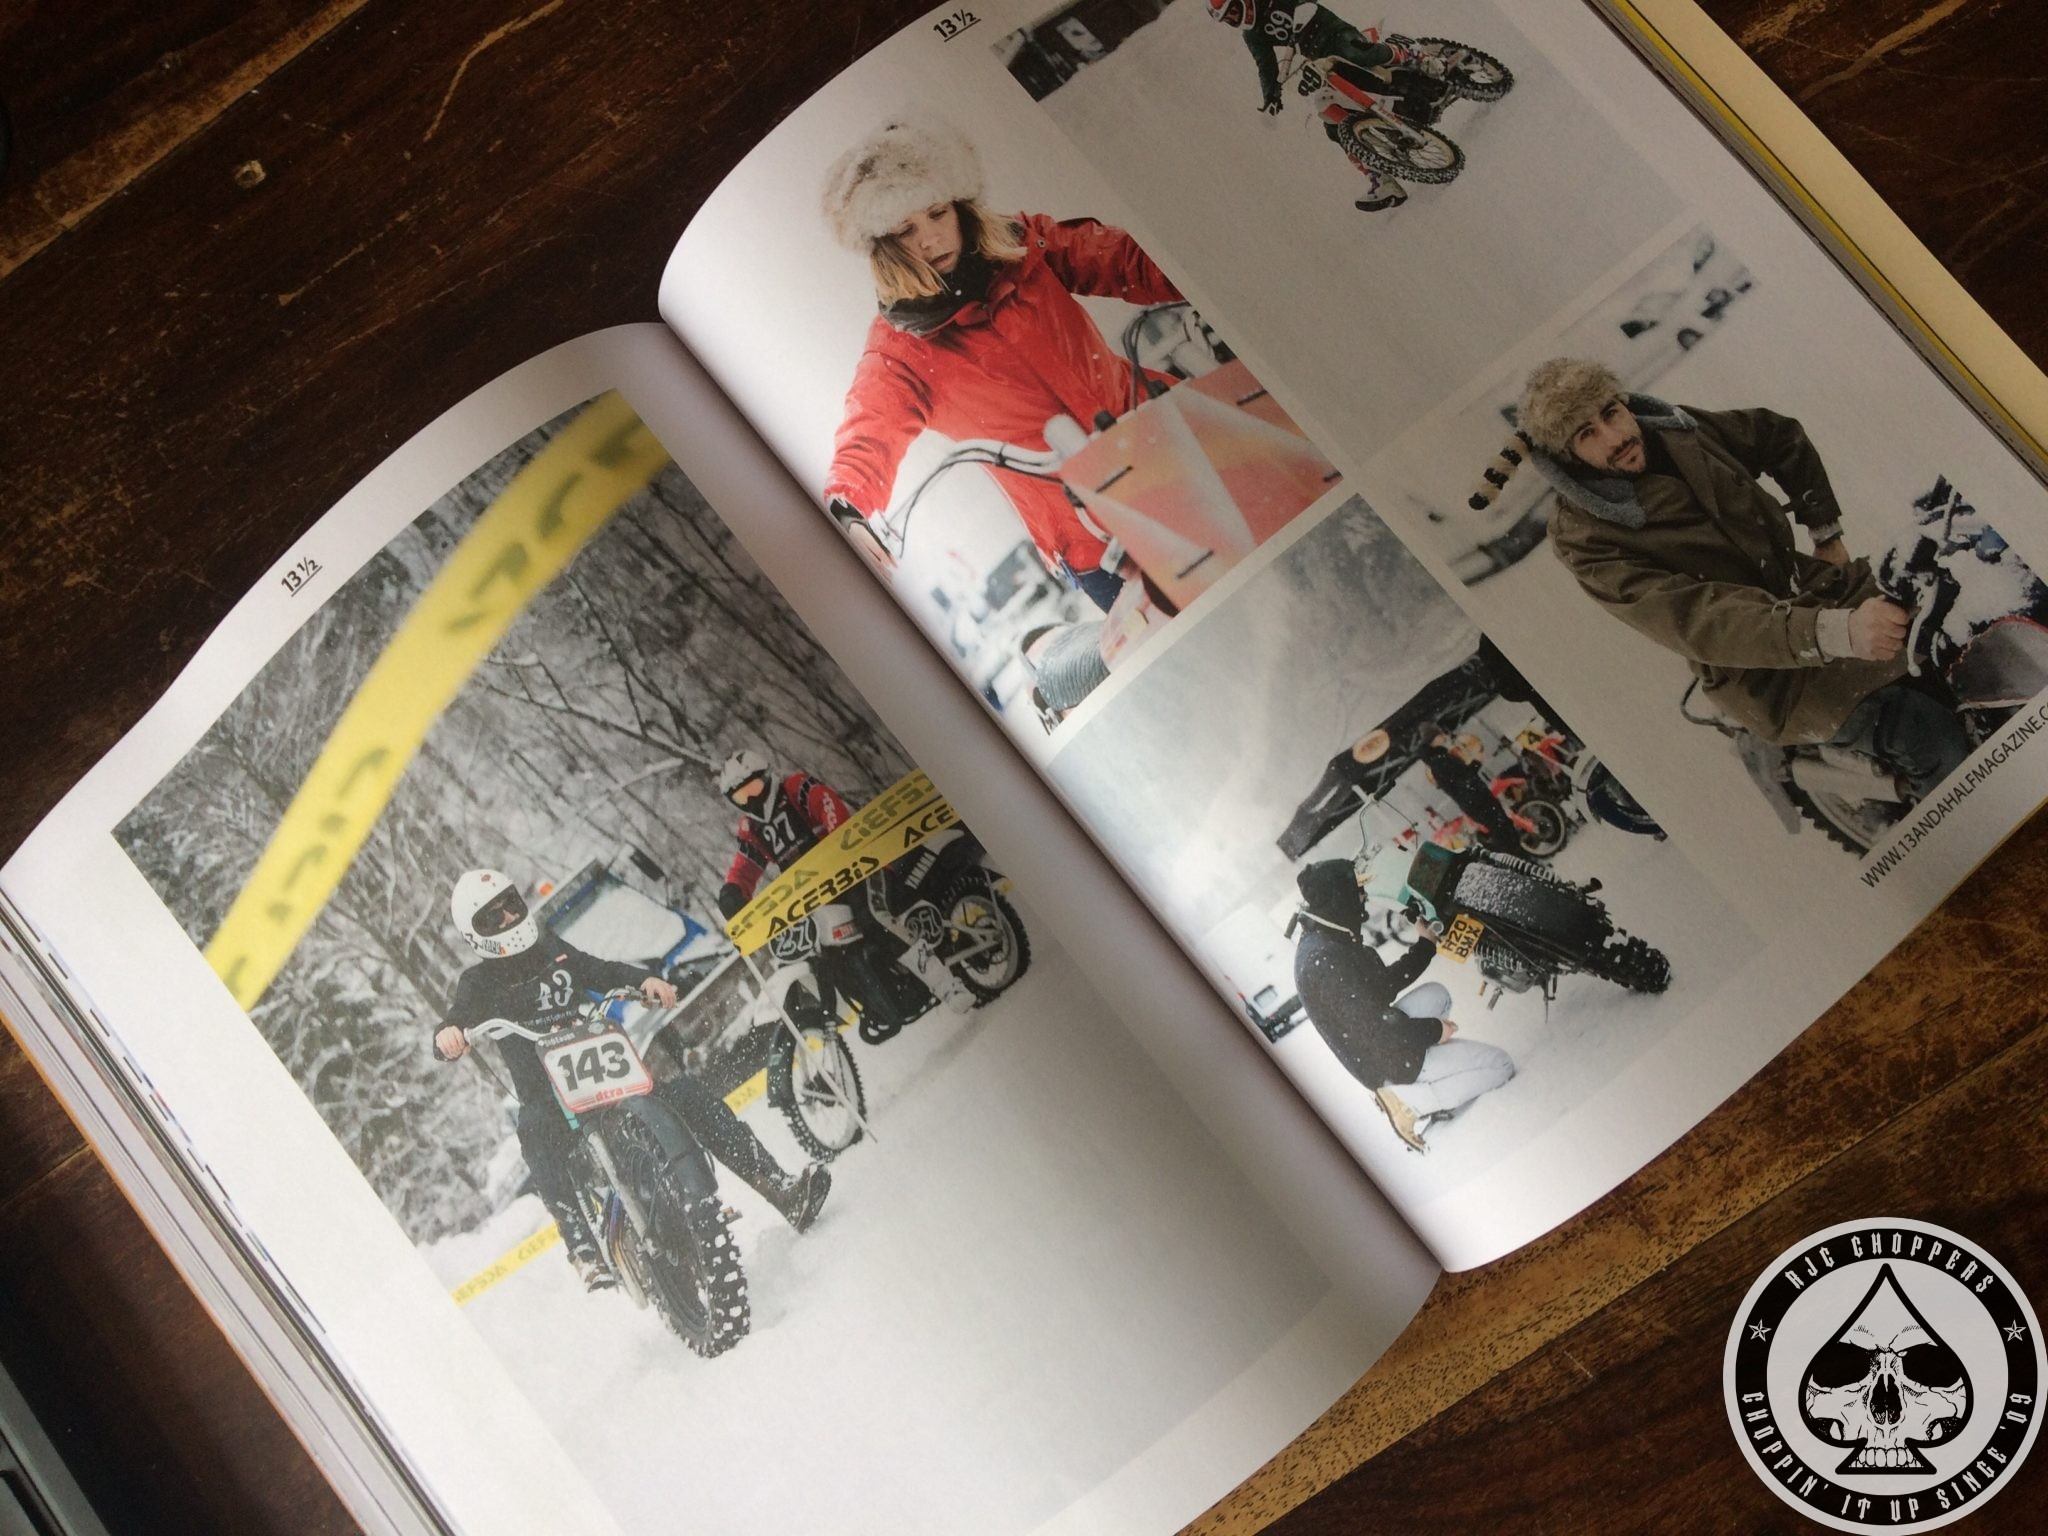 13 and a half magazine issue 5